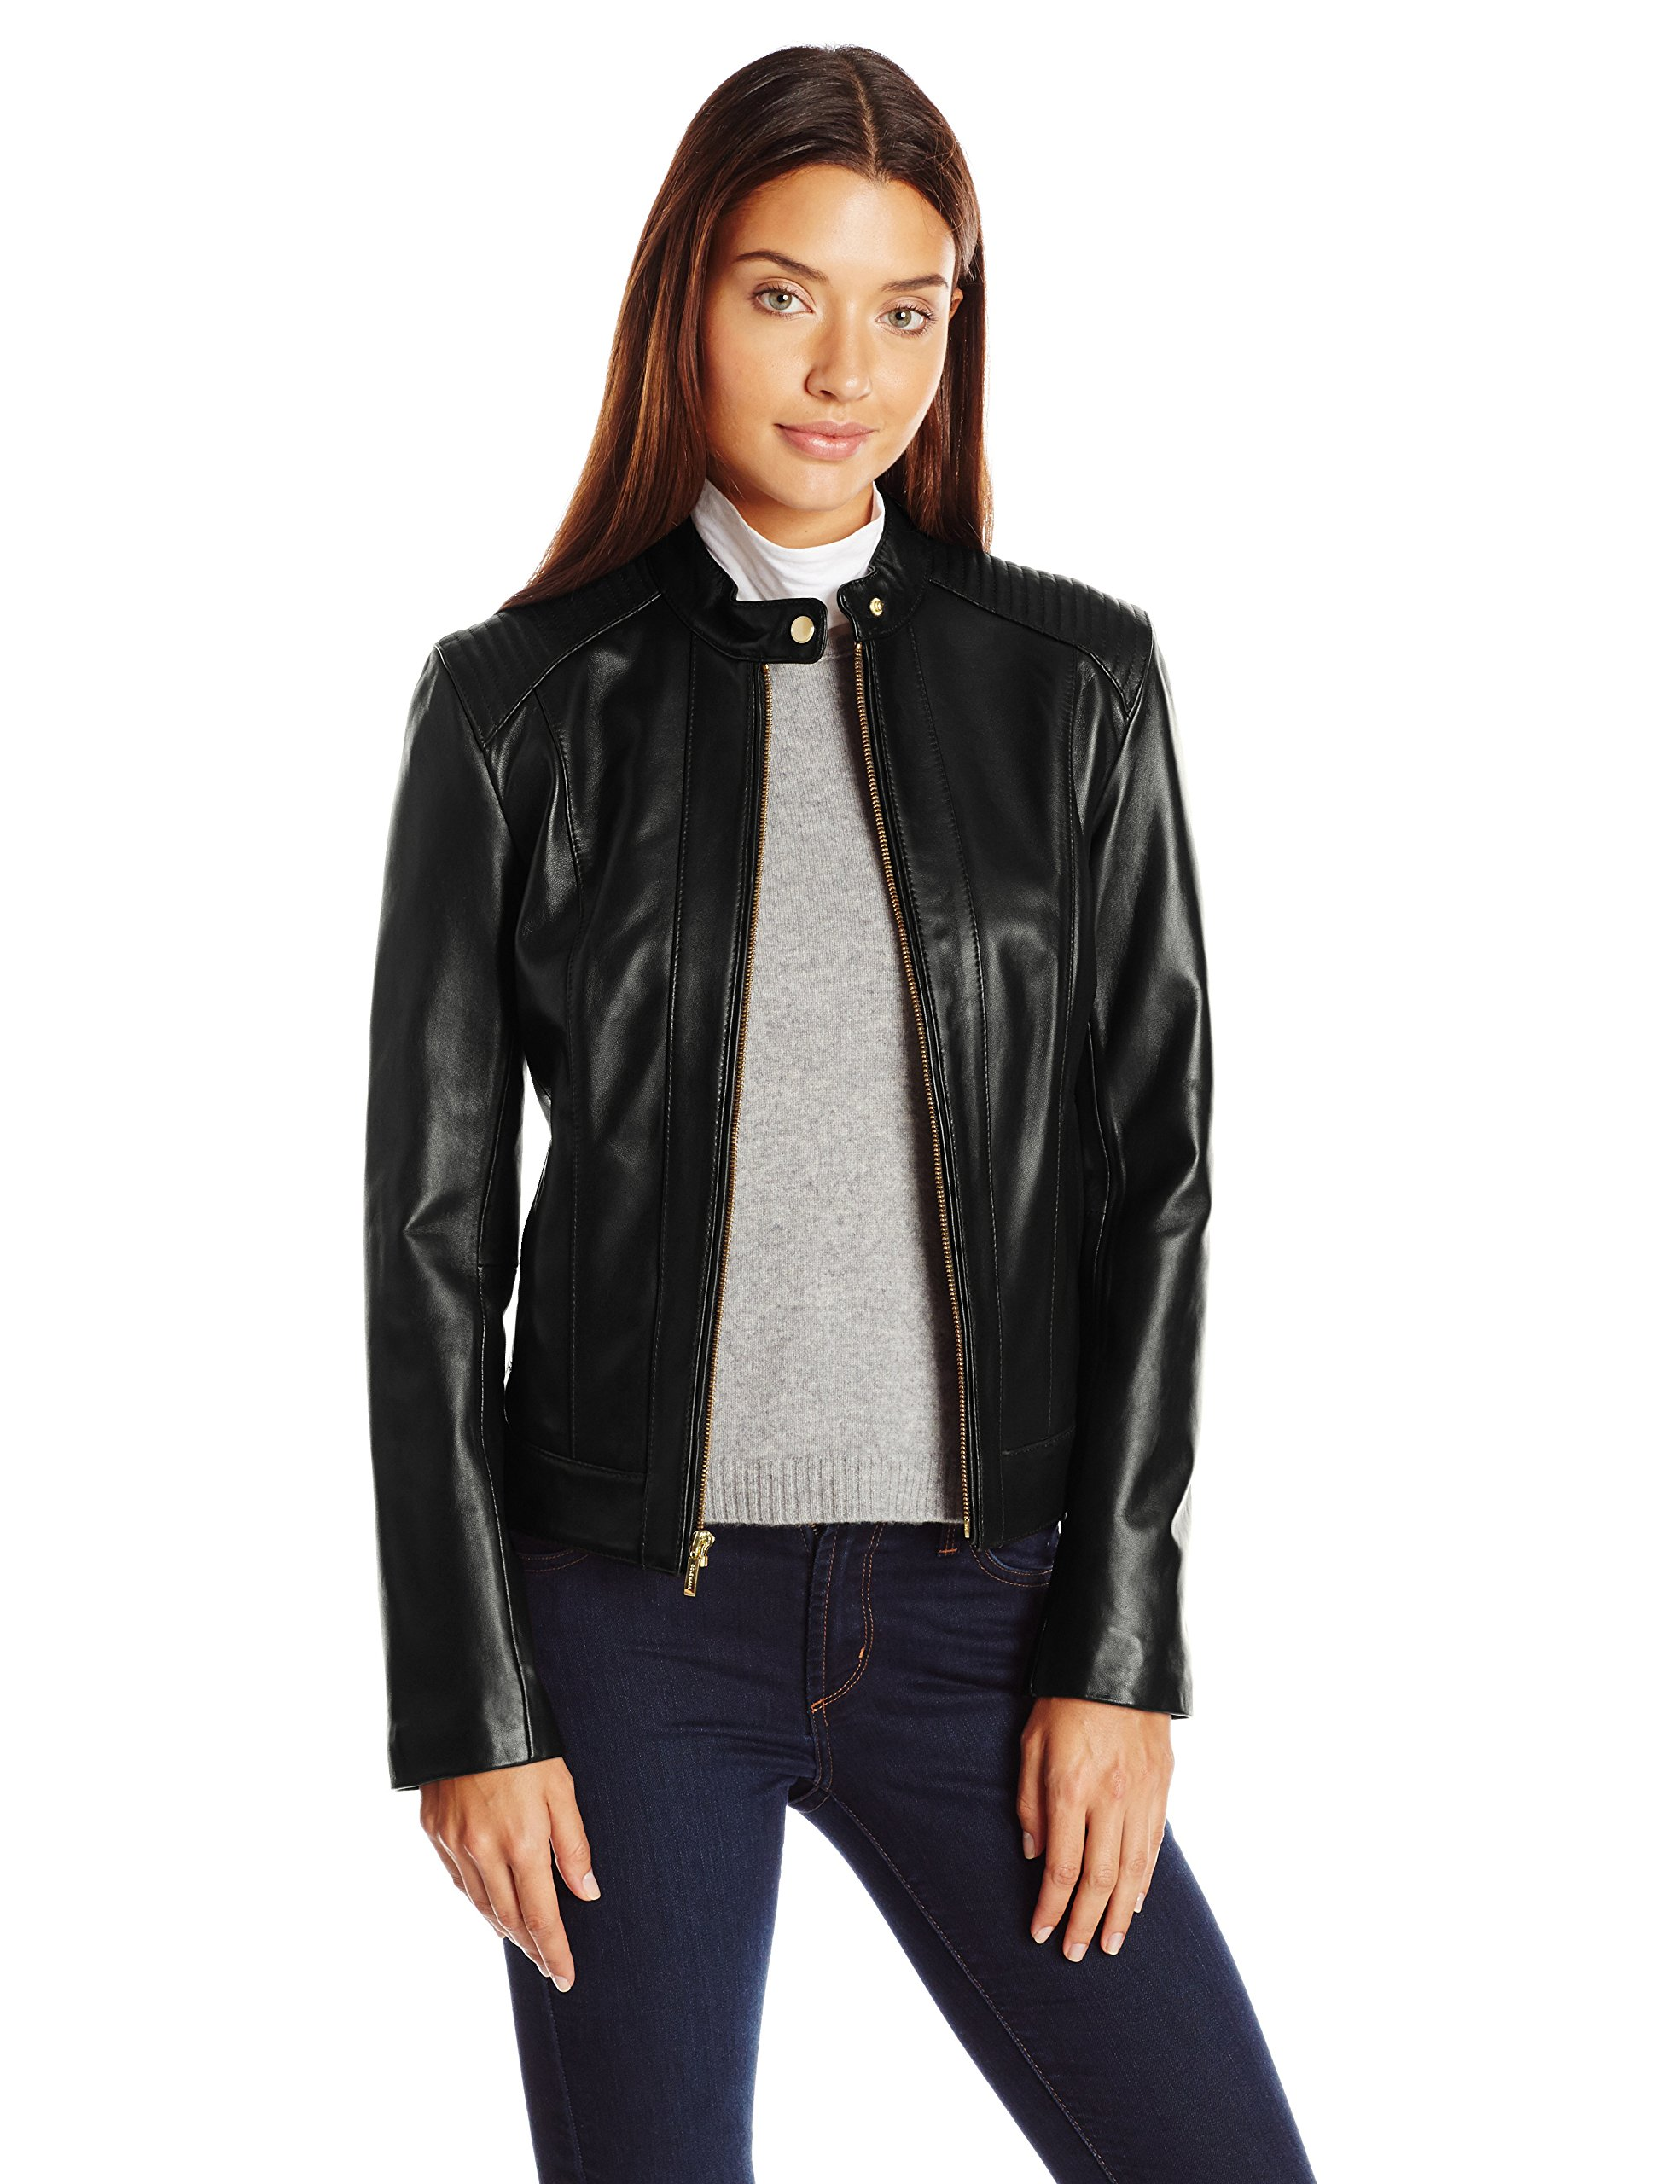 Cole Haan Women's Racer Jacket With Quilted Panels, Black, Medium